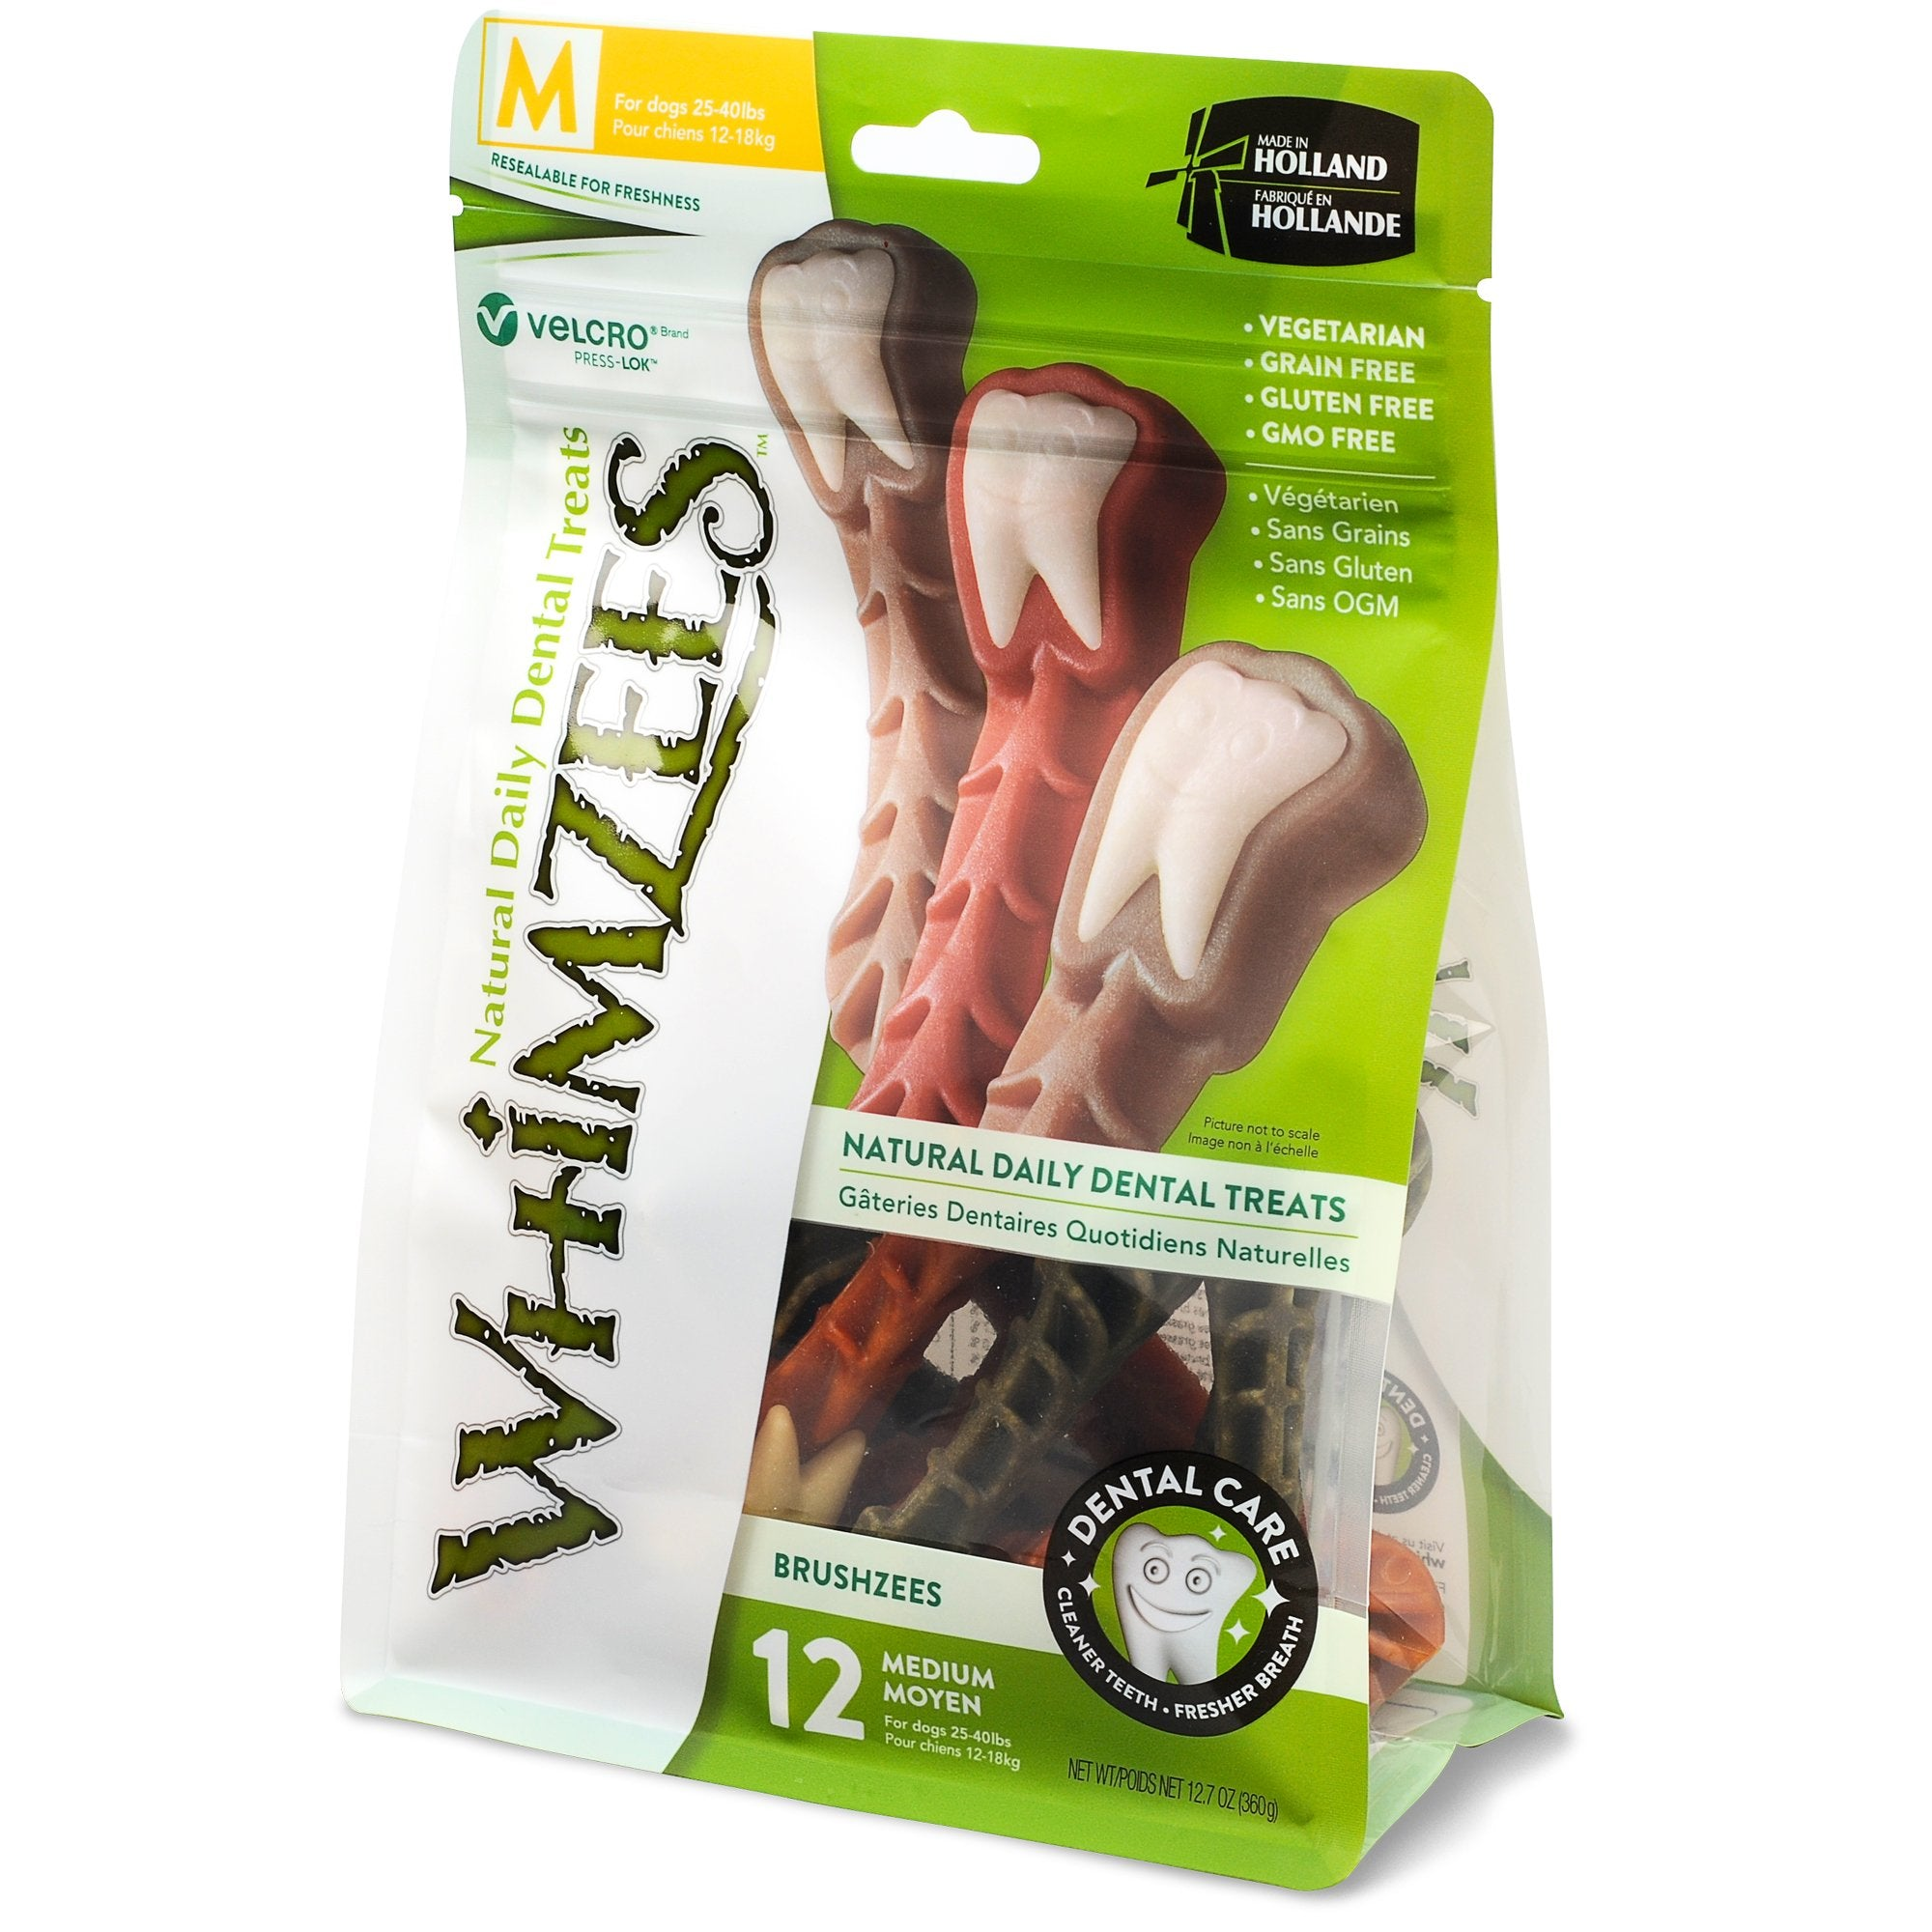 Whimzees Brushzees Bag